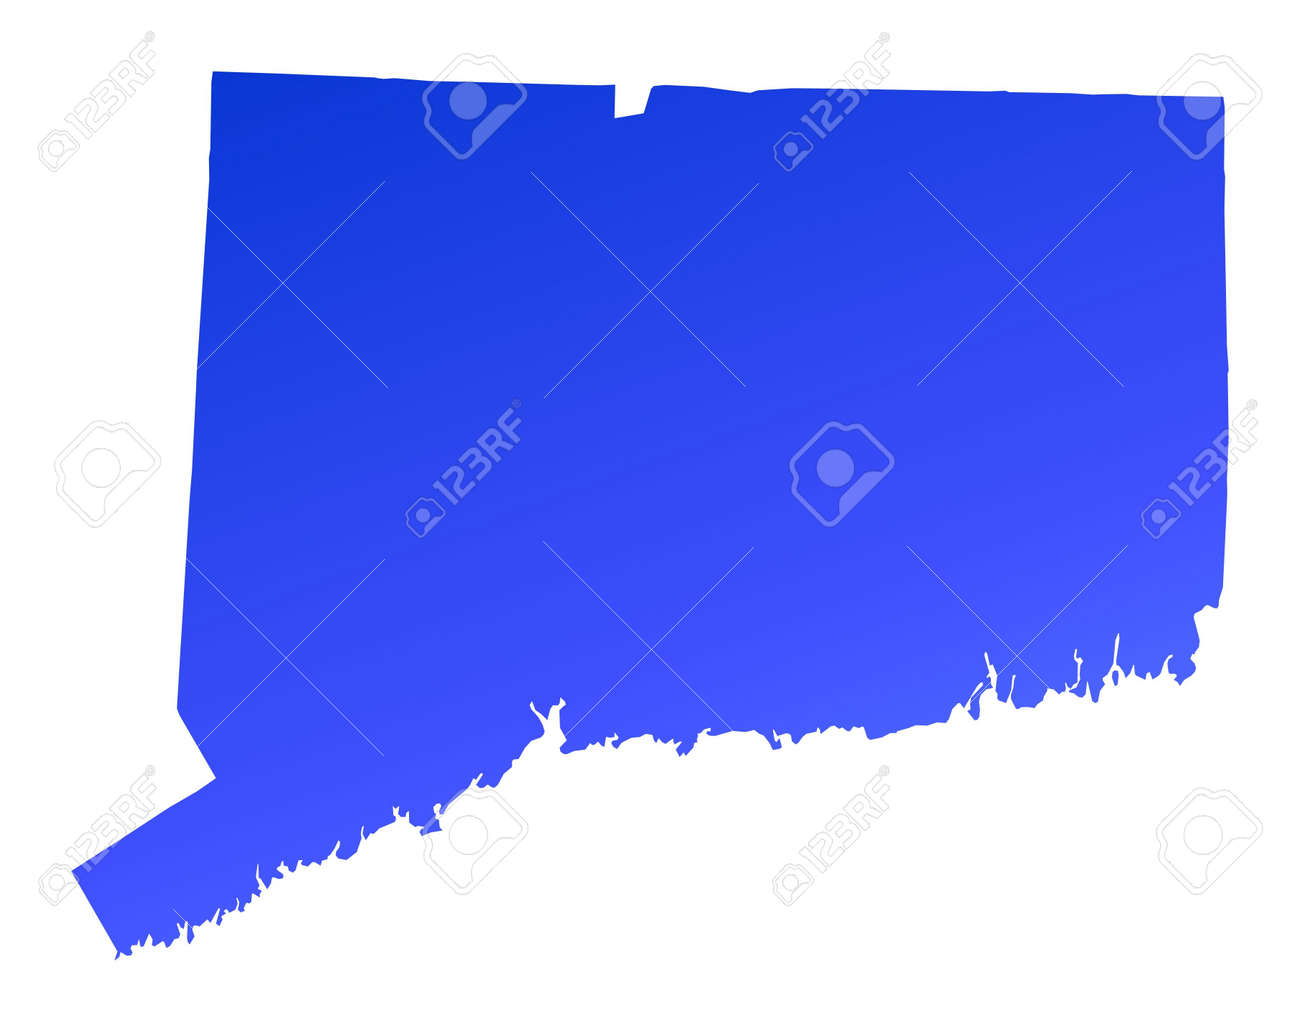 Blue Gradient Connecticut Map USA Detailed Mercator Projection - Map usa connecticut